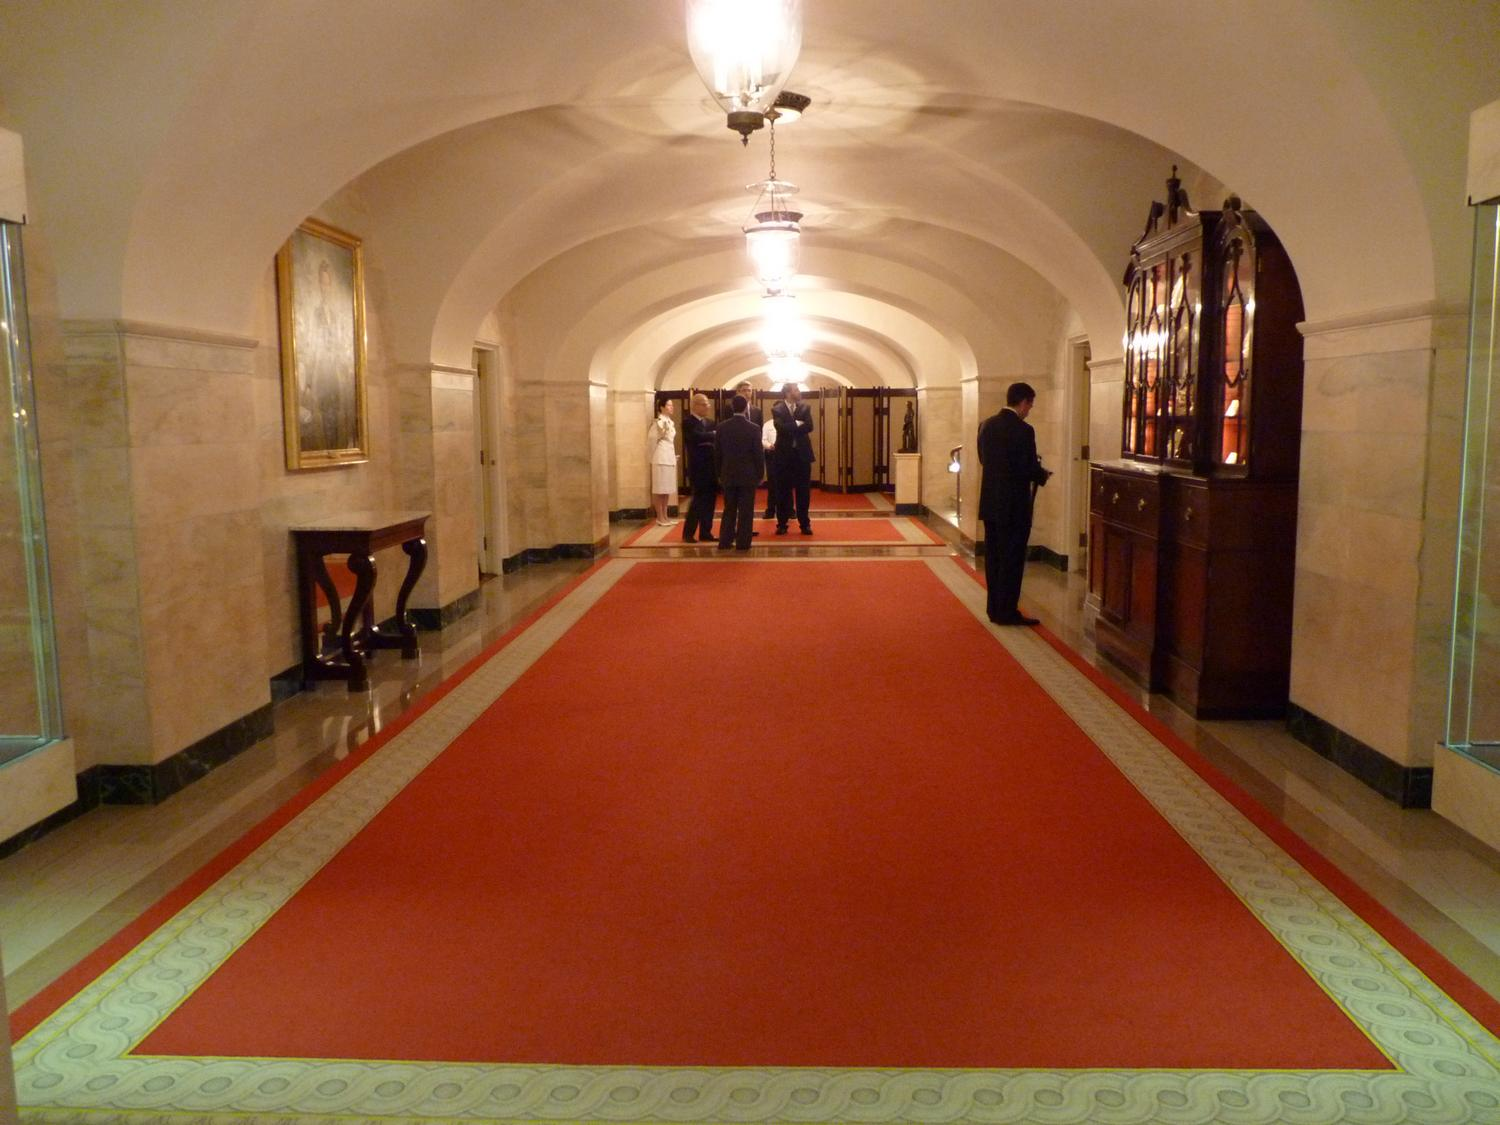 - This is the hallway on the Ground Floor of the White House. The reception will be upstairs on the State Floor. - Panasonic DMC-FZ35 - White House = President Barak Obama - Tony Karp, design, art, photography, techno-impressionist, techno-impressionism, aerial photography , drone , drones , dji , mavic pro , video , 3D printing - Books -